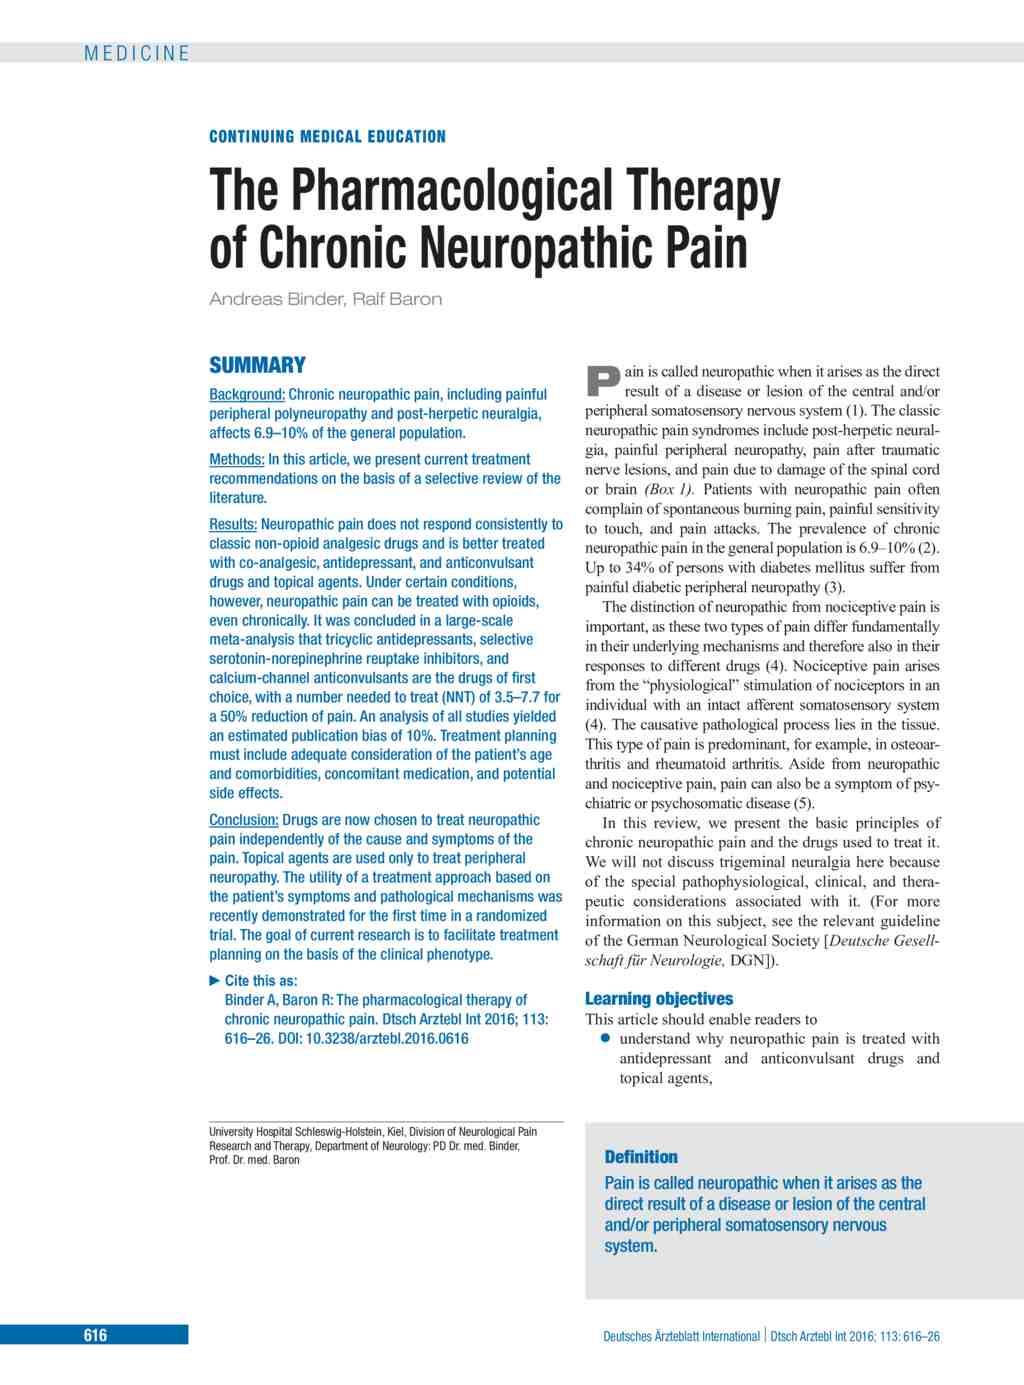 the pharmacological therapy of chronic neuropathic pain (16.09.2016)